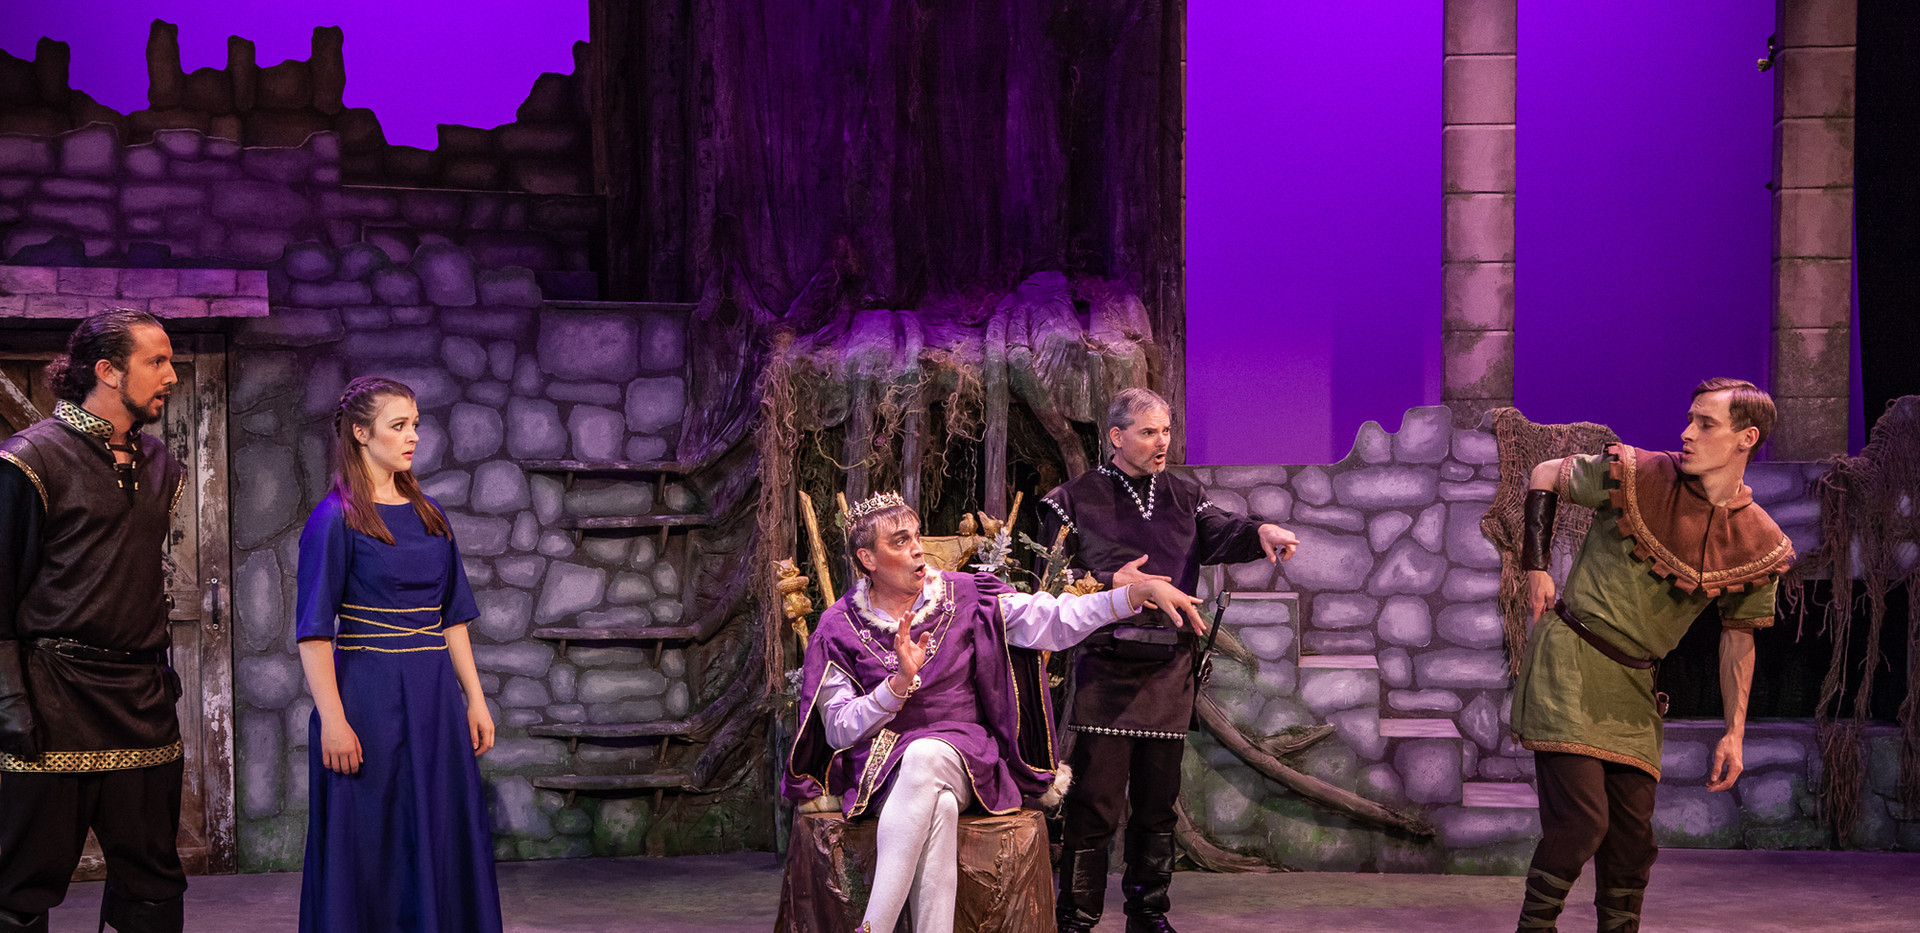 Sherwood Jeff Kingsbury as Prince John 2